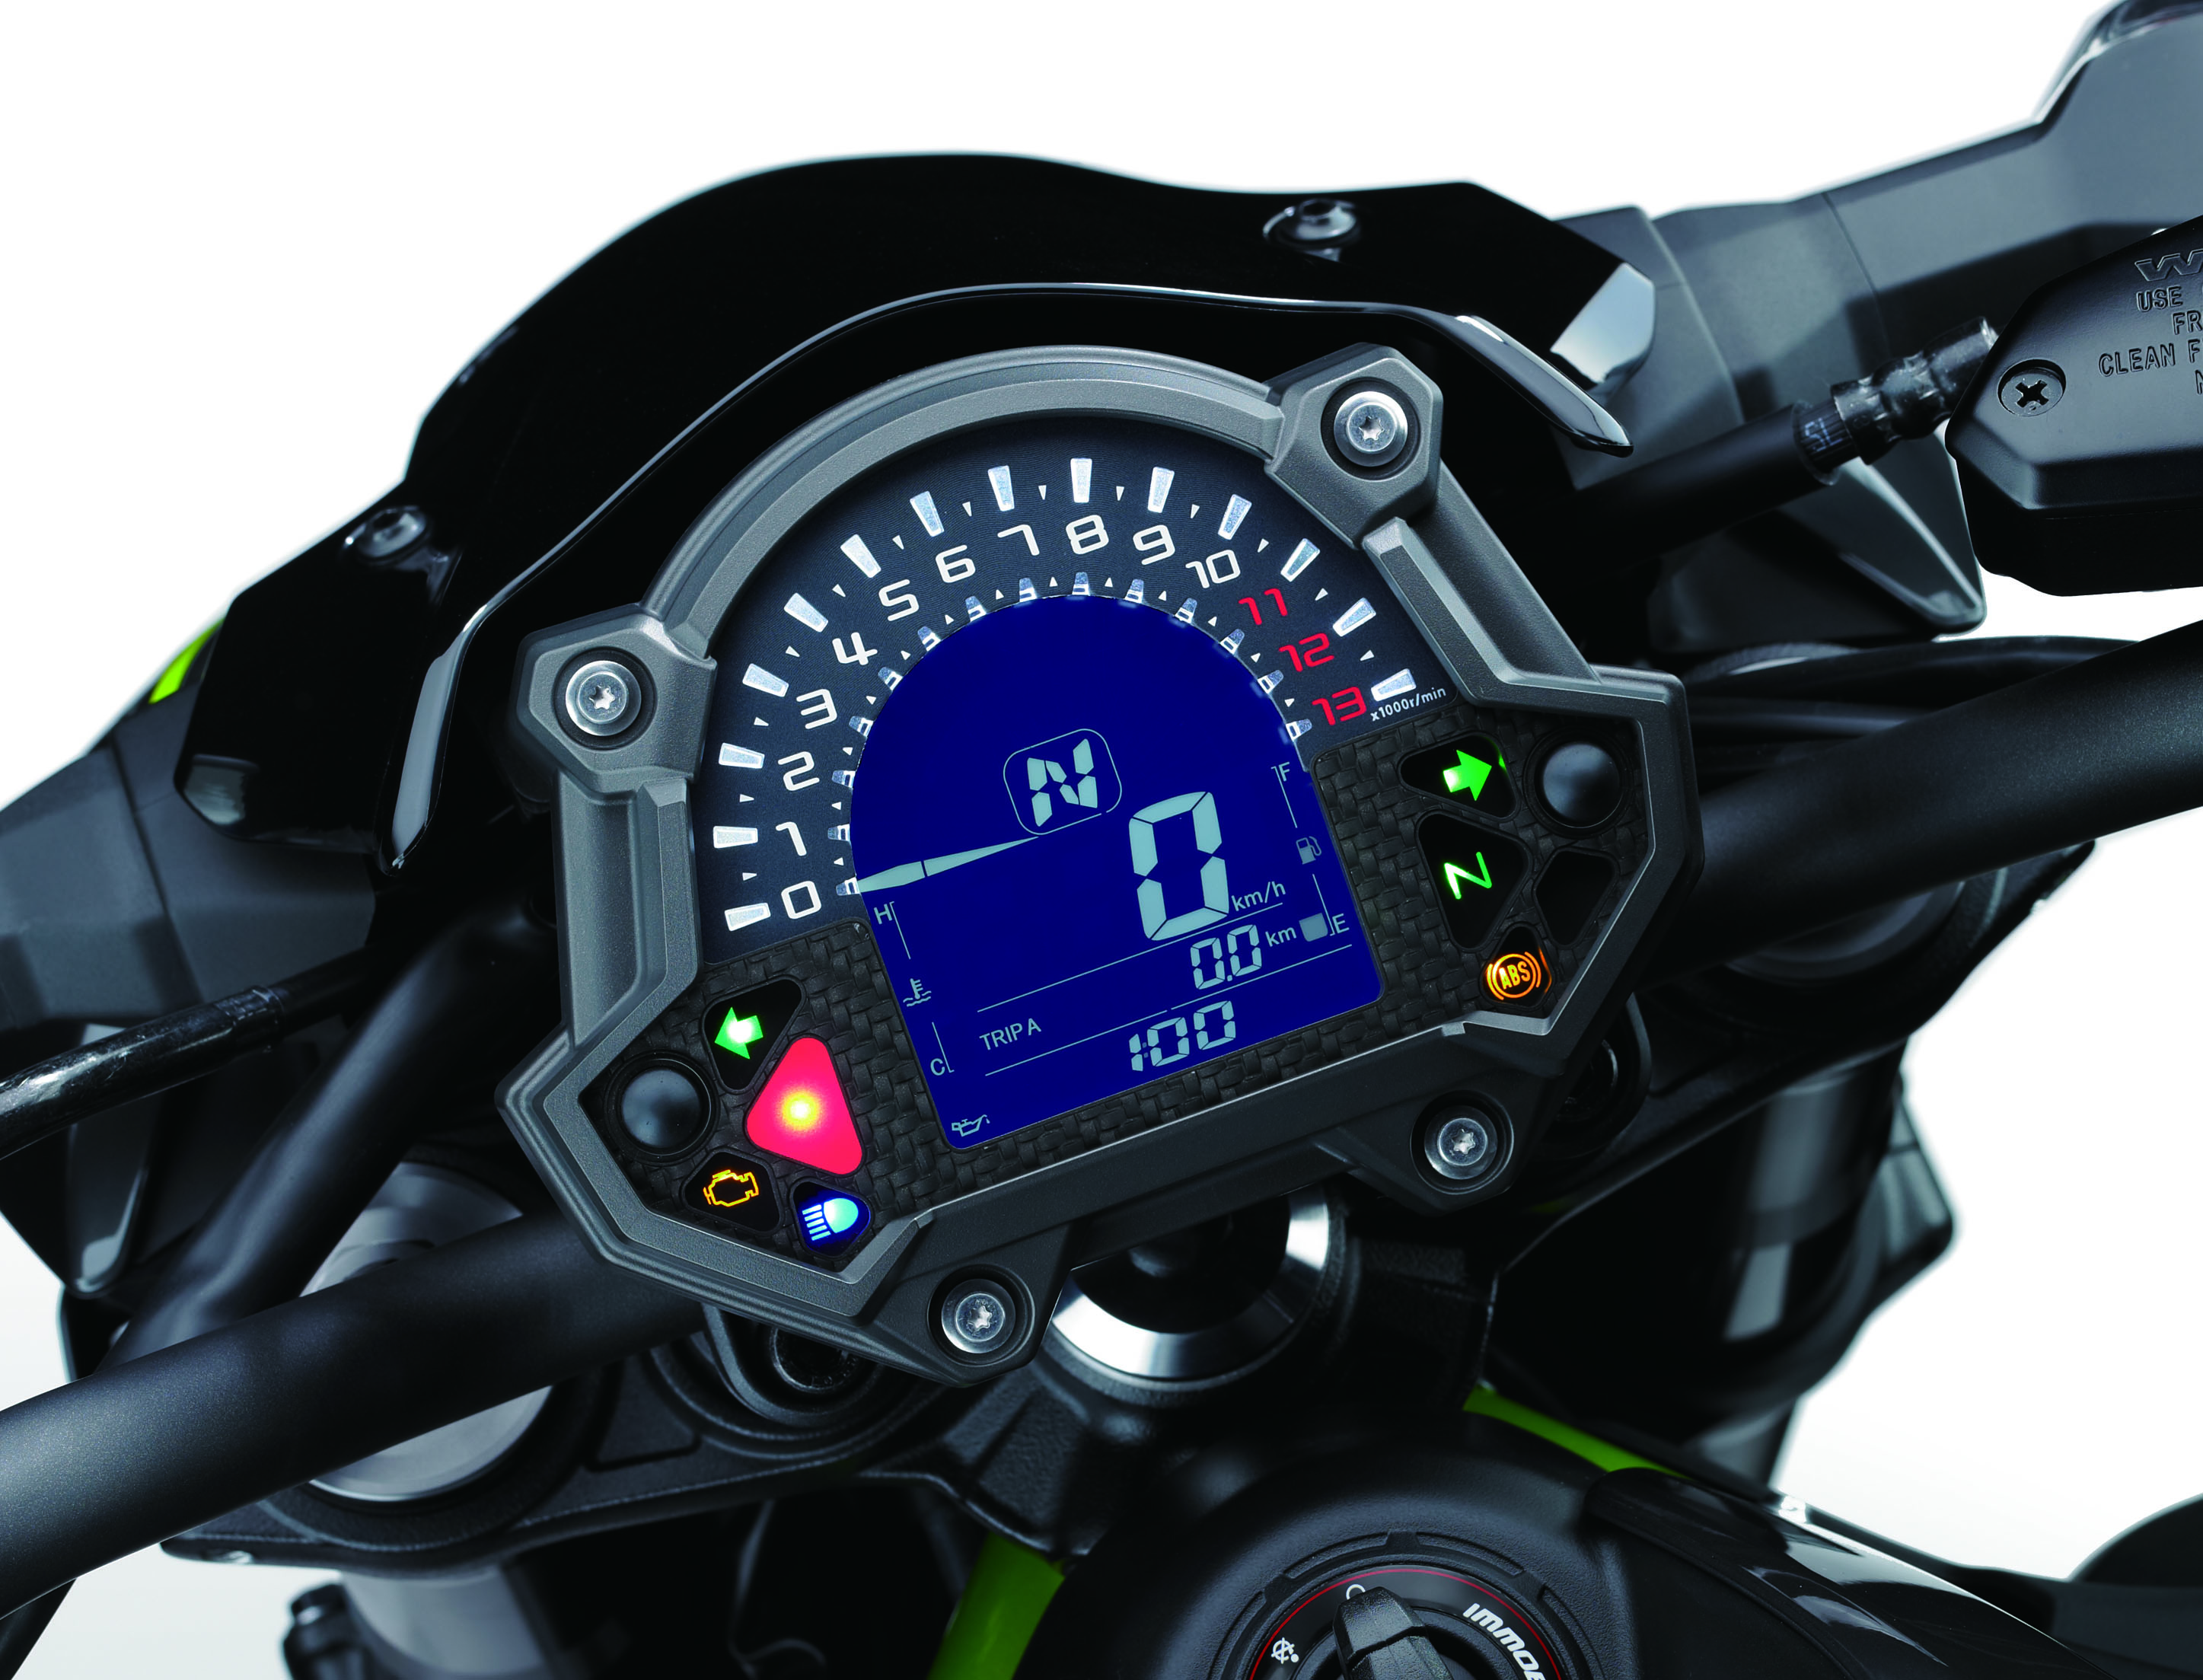 The New Z900 Also Comes With Assist And Slipper Clutch LCD Screen Analogue Tachometer Together A Shift Up Indicator Adding More Fun In